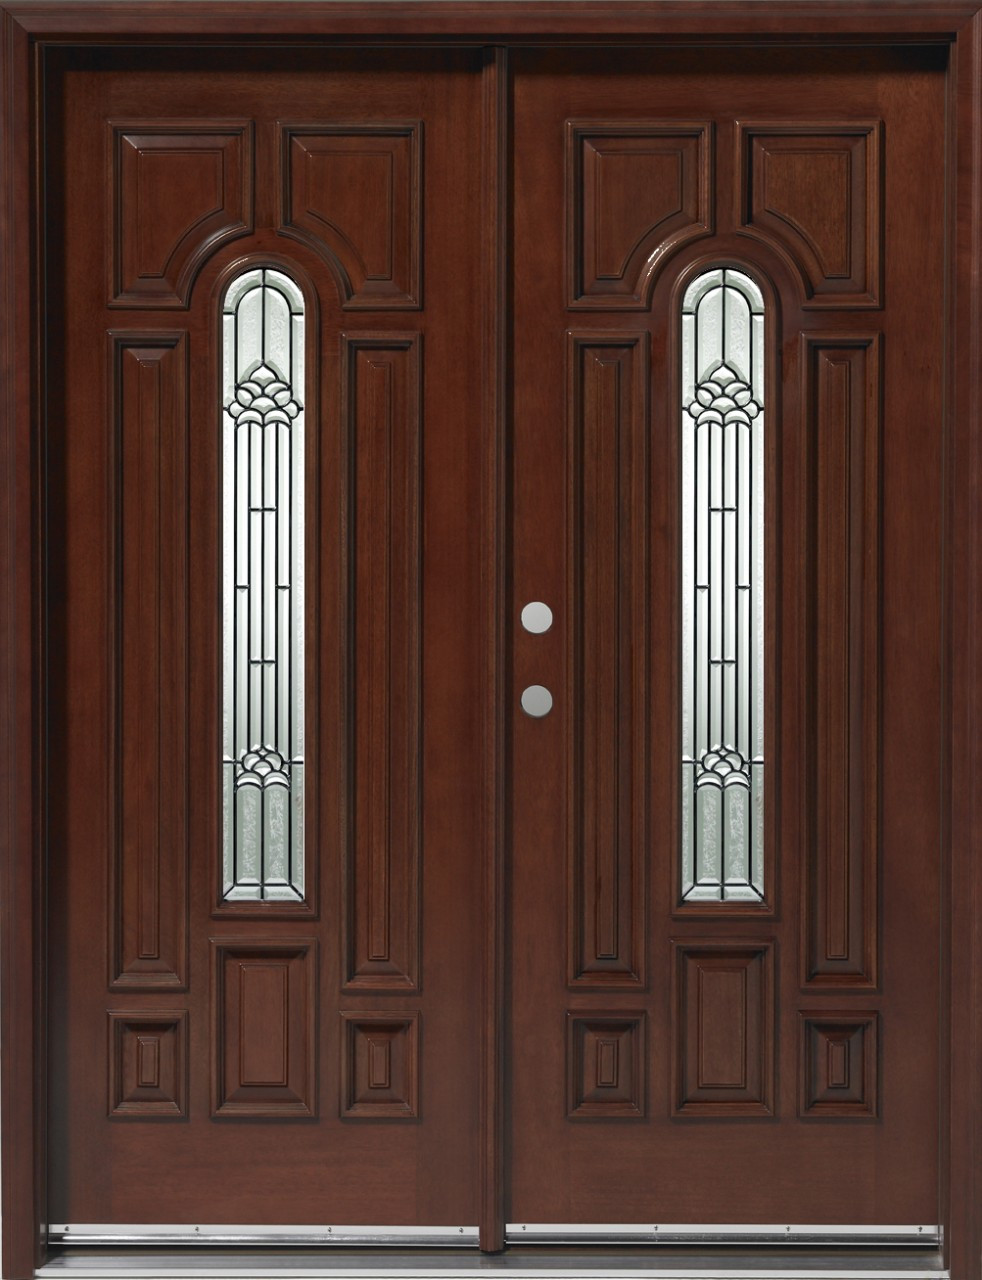 Home entrance door prehung exterior door for Home double entry doors